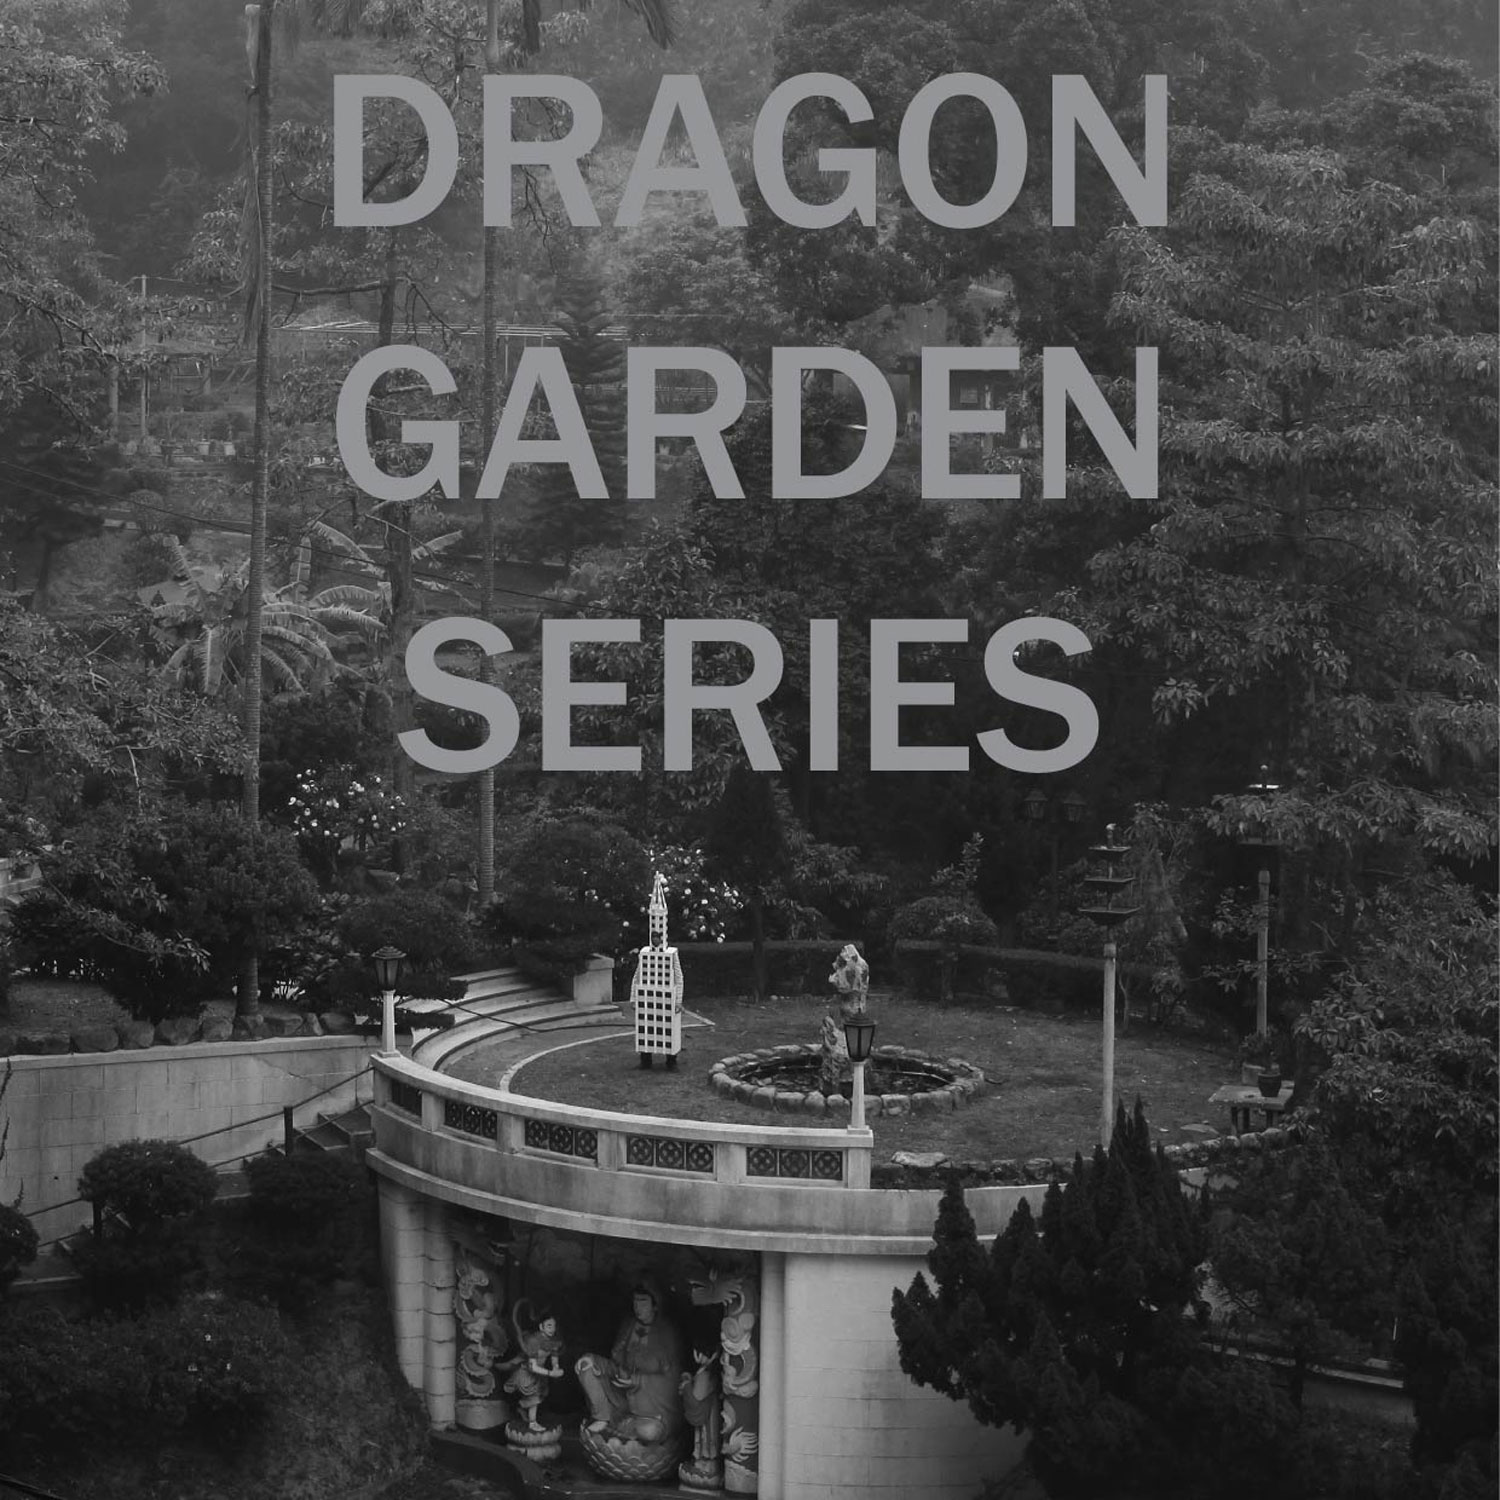 Dragon Garden Photo Series 龍圃花園相片系列